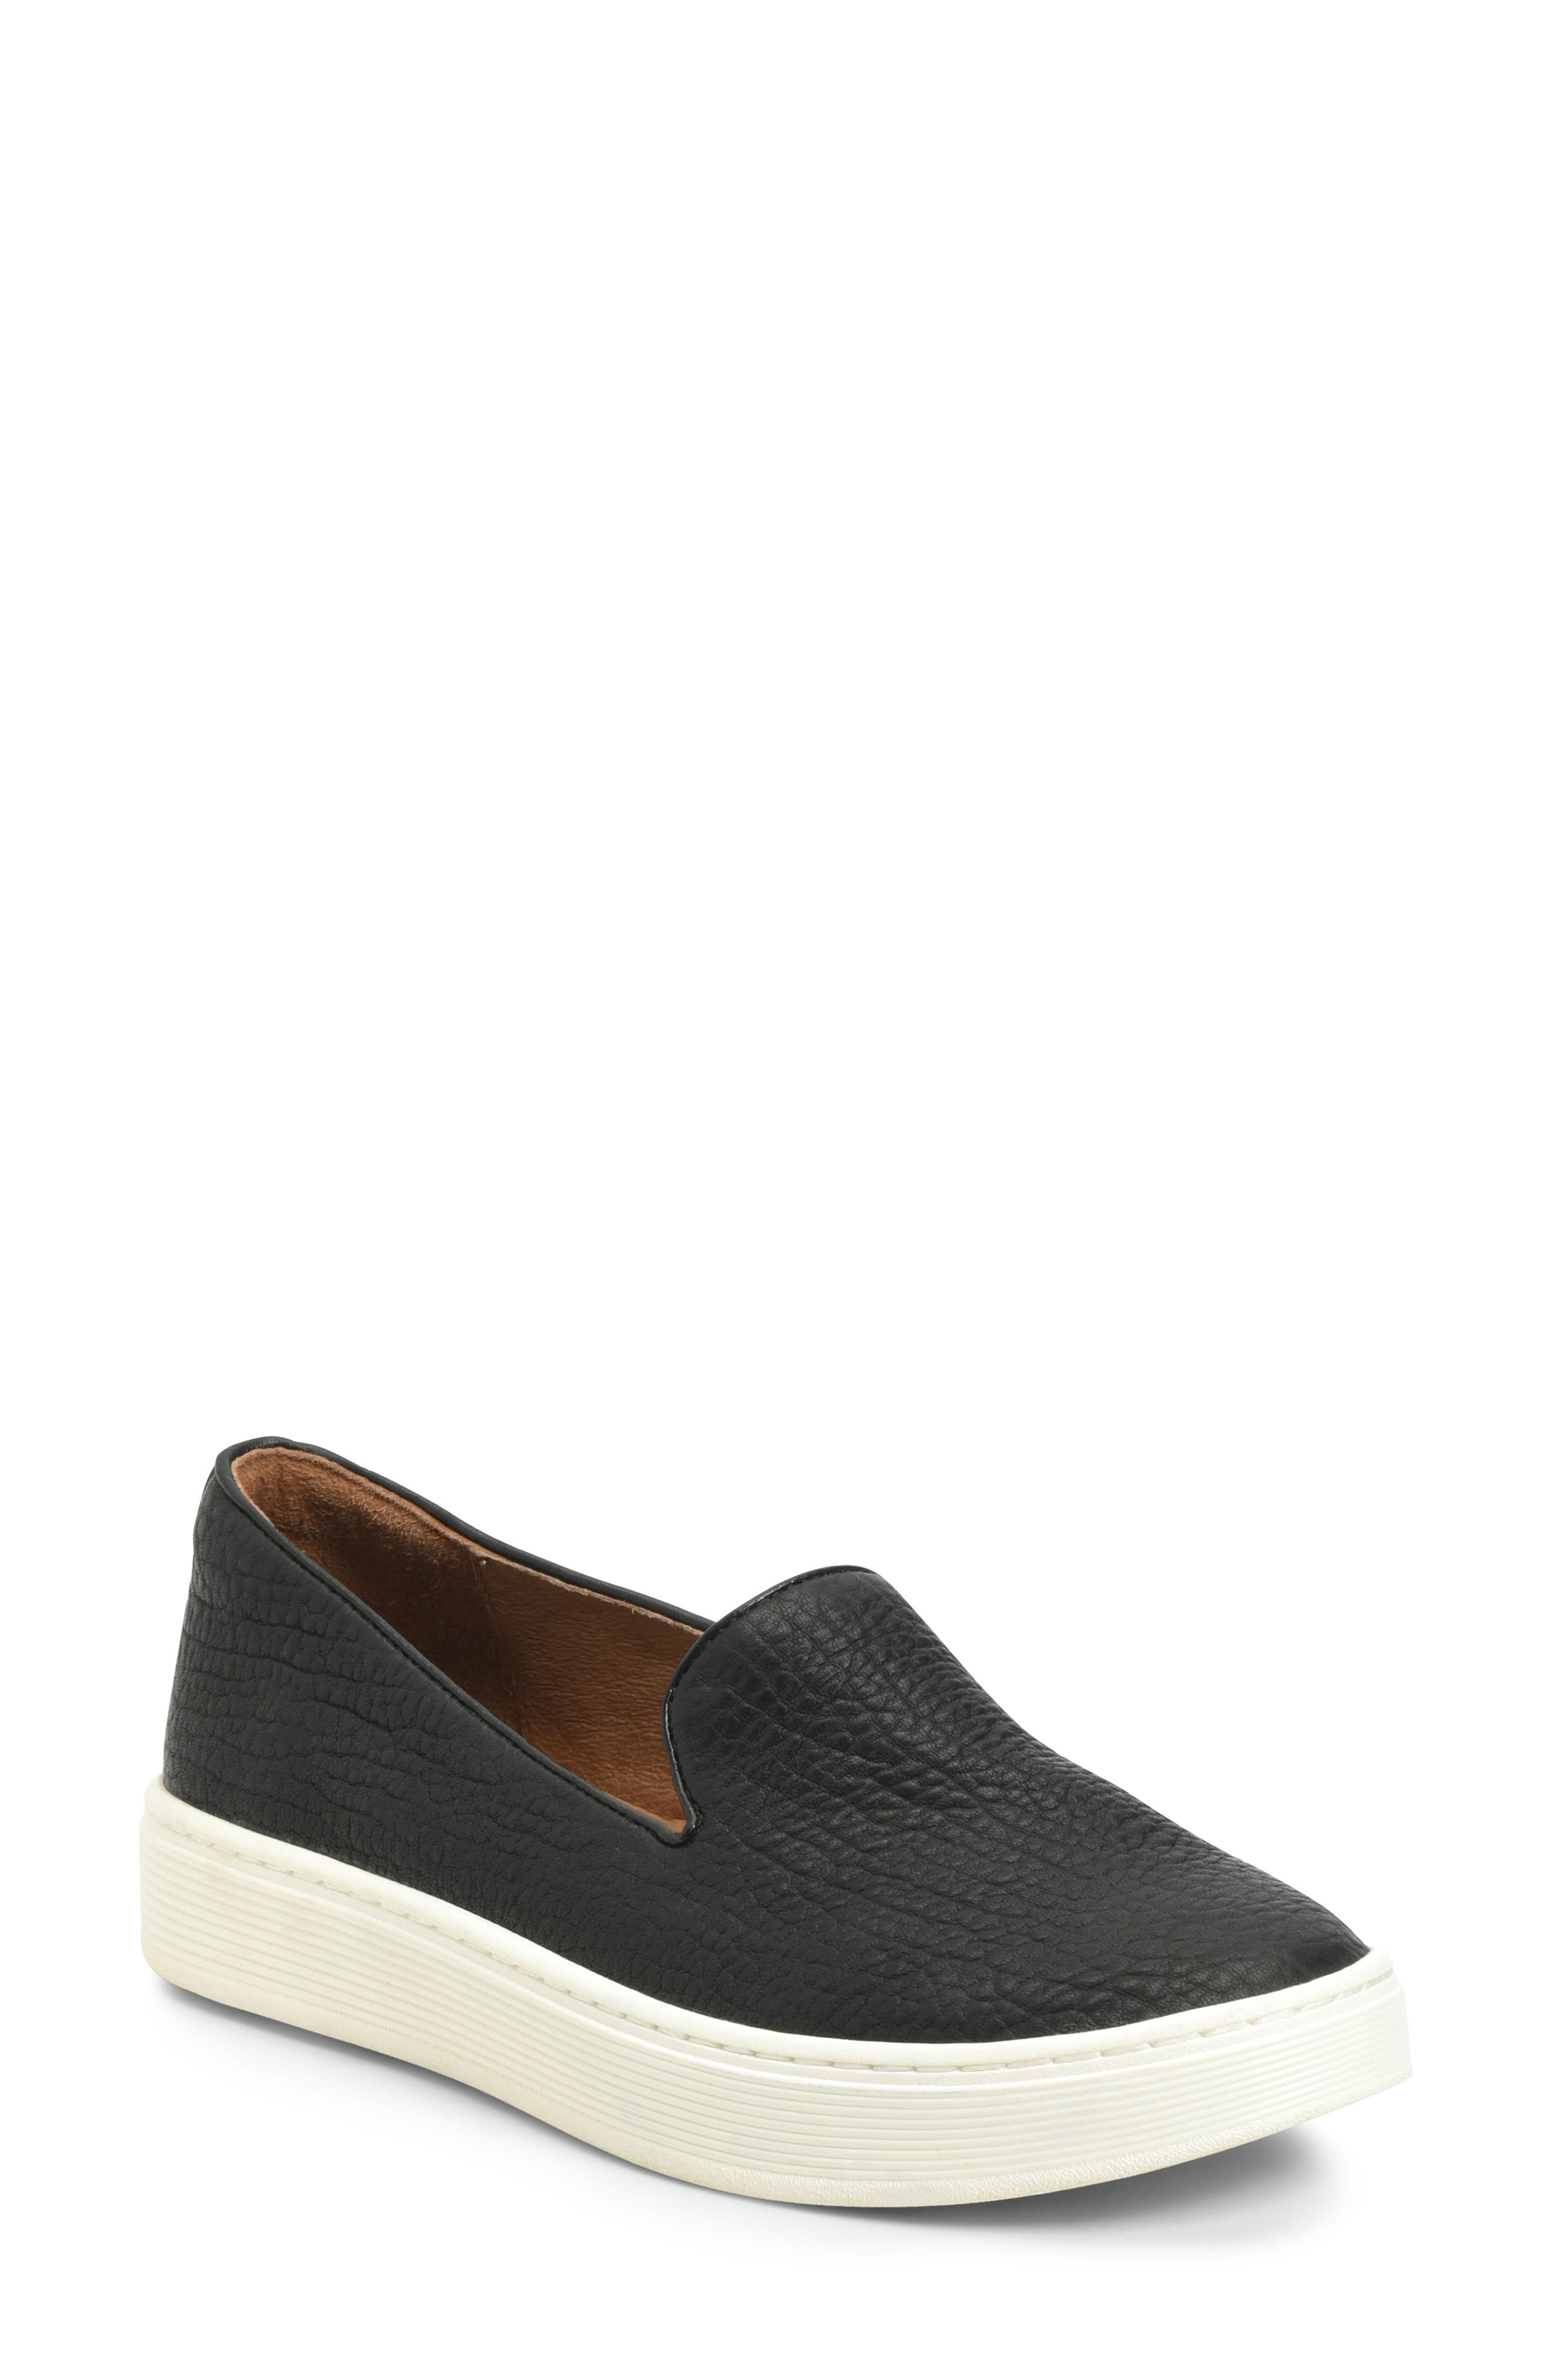 Sofft Somers Slip-On Sneaker- Black